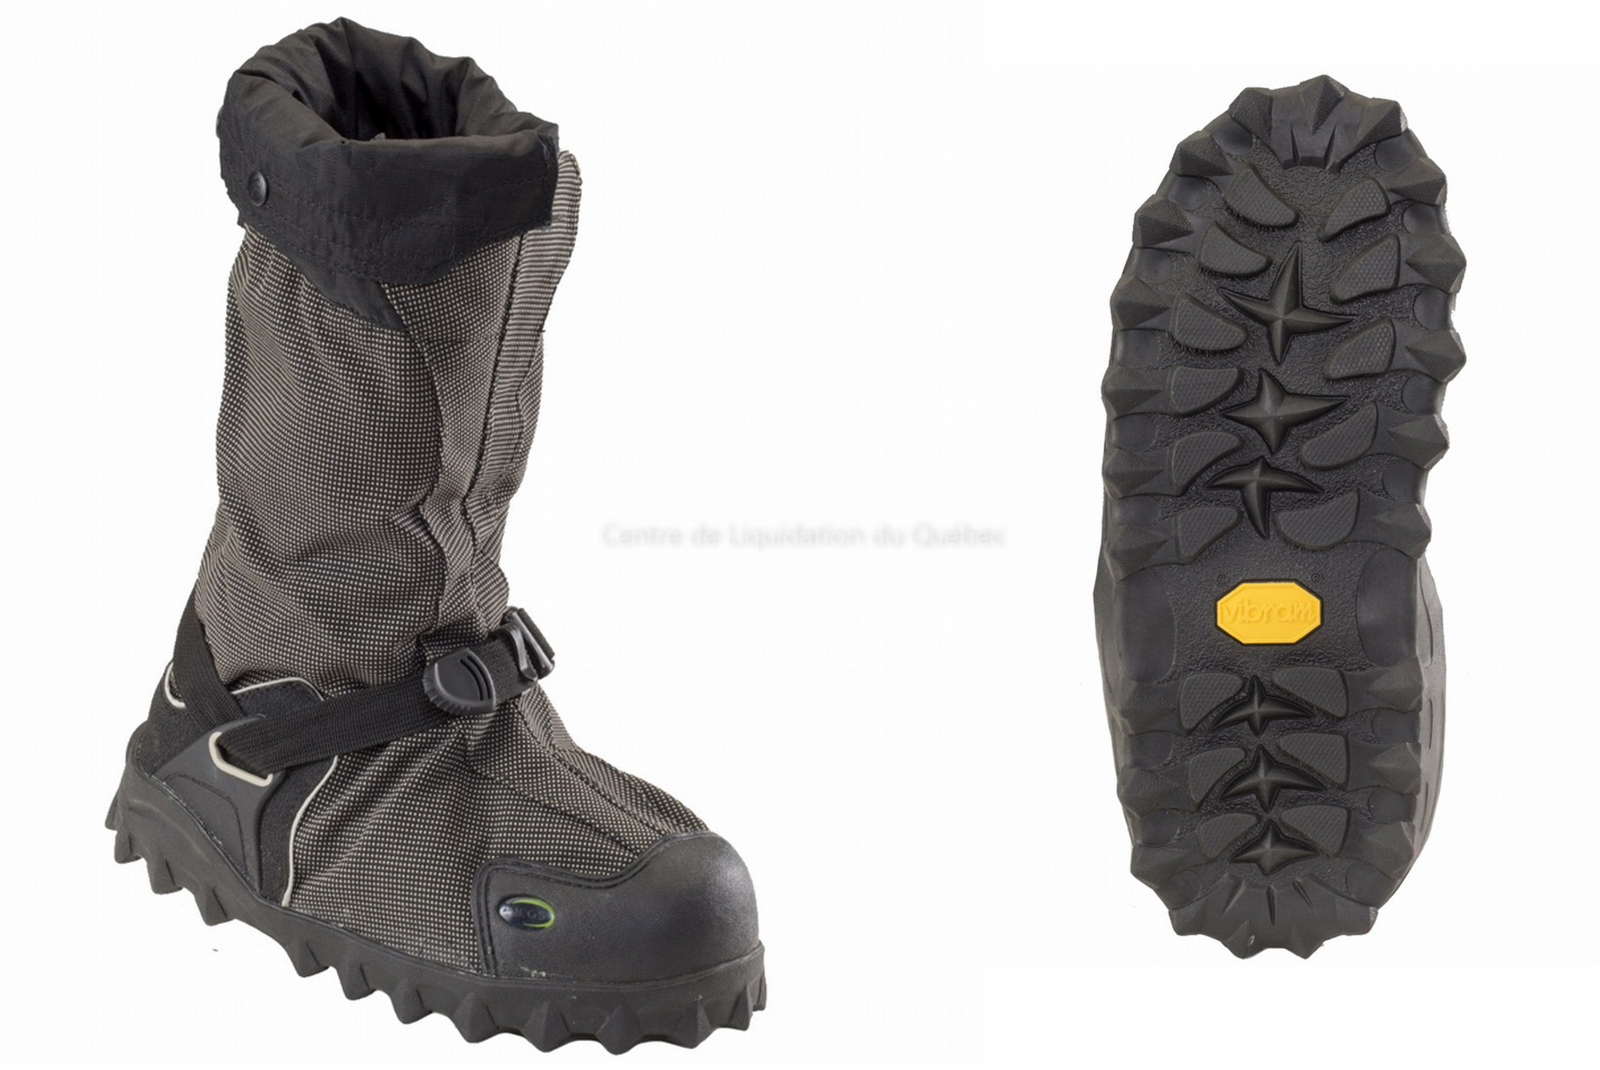 Couvre chaussure NEOS Navigator Stabilicer N5P3 Overshoes Couvre